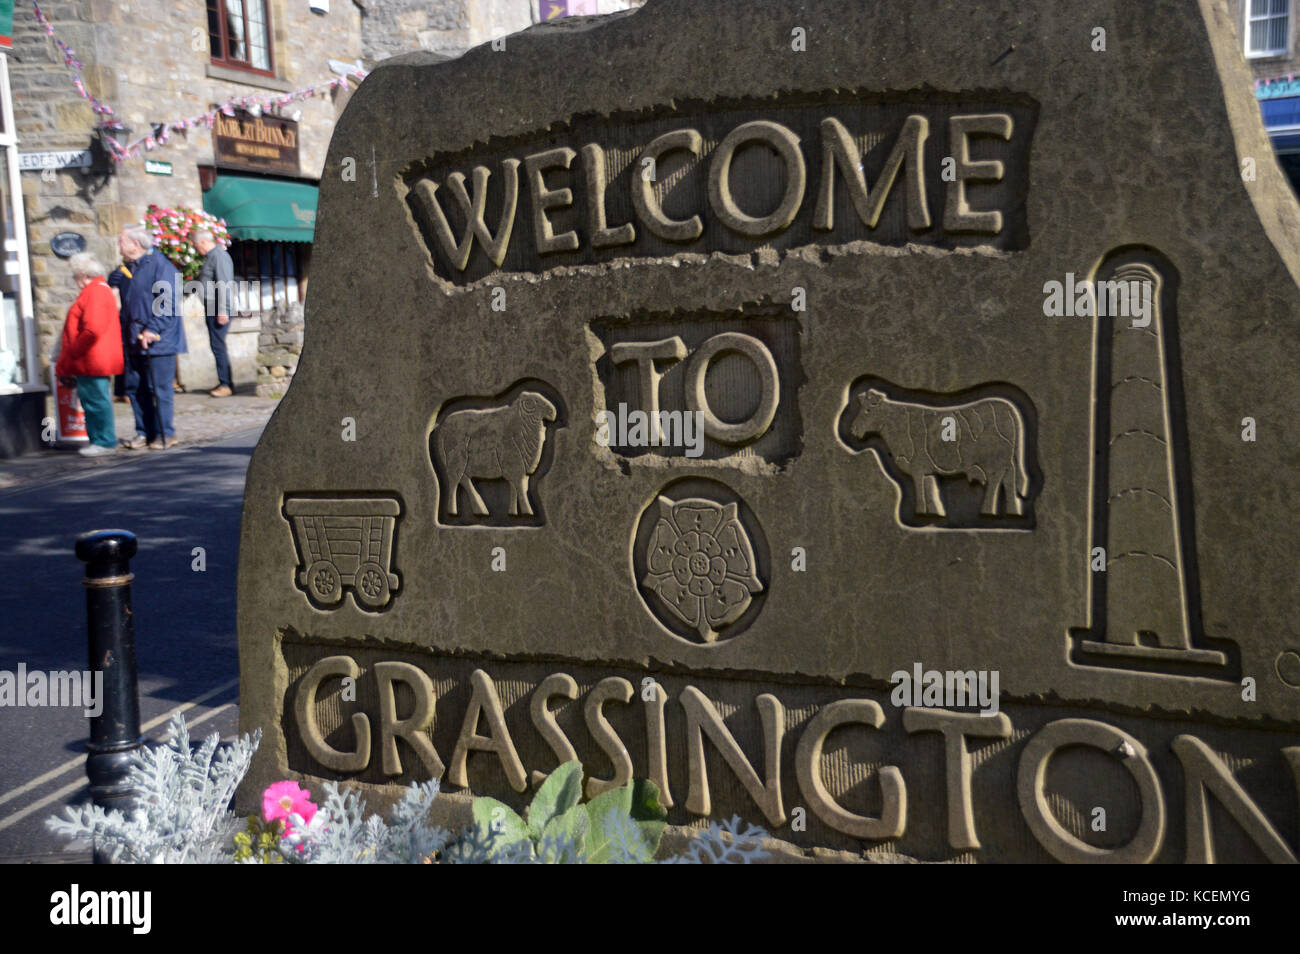 Stone Carved Welcome to Grassington Village Sign on the Dales Way Long Distance Footpath in Wharfedale, Yorkshire Dales National Park, England, UK. Stock Photo